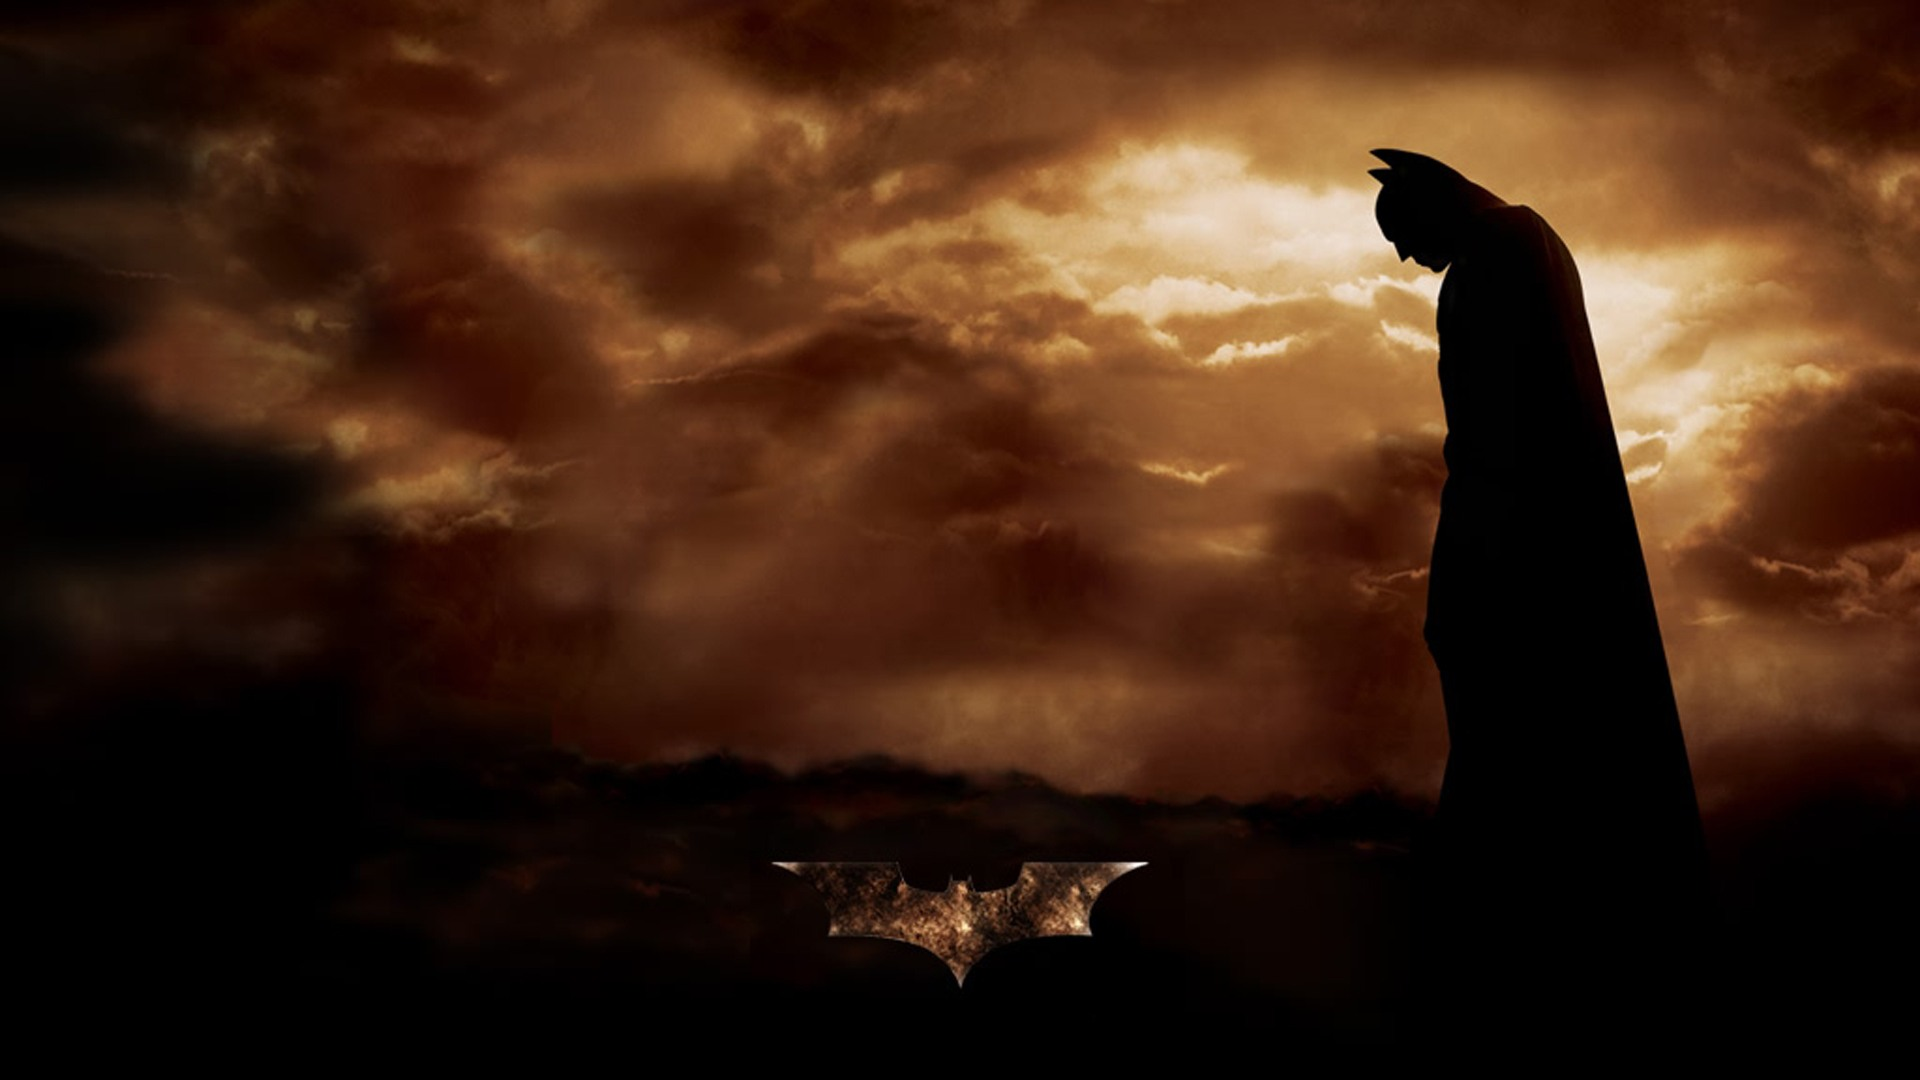 Batman Begins desktop wallpaper 1920x1080